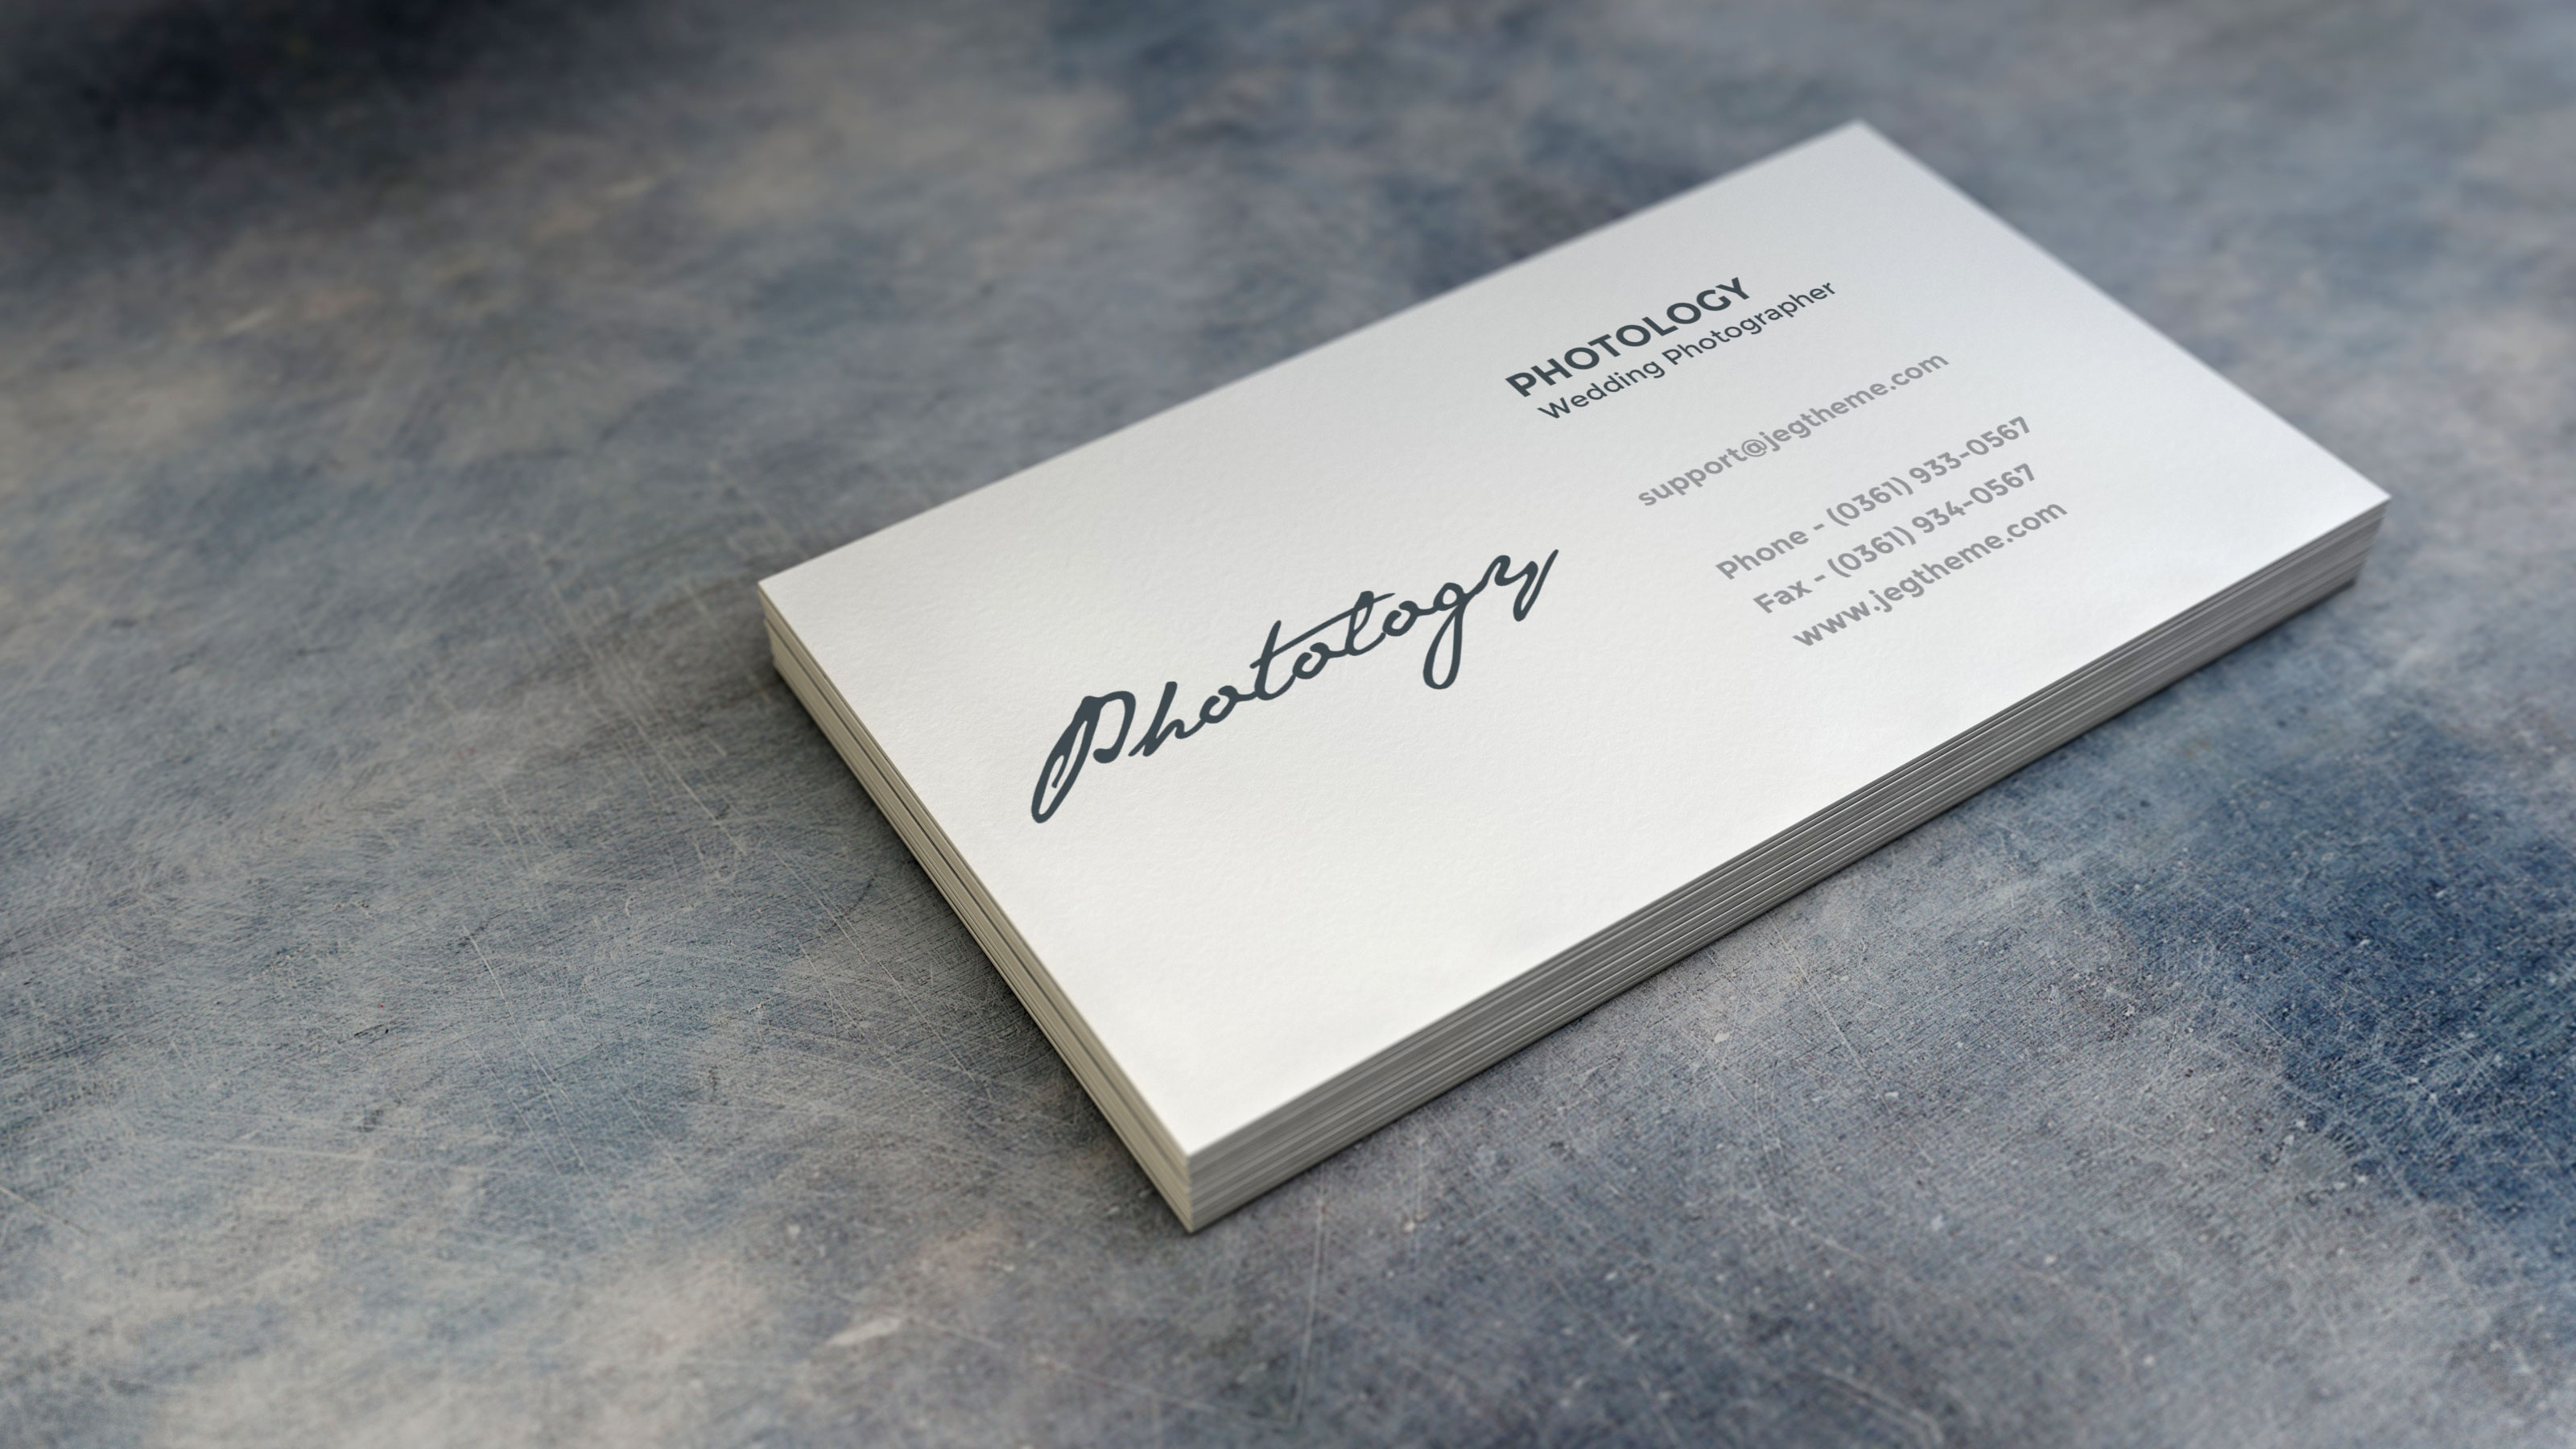 Typhography – Photology